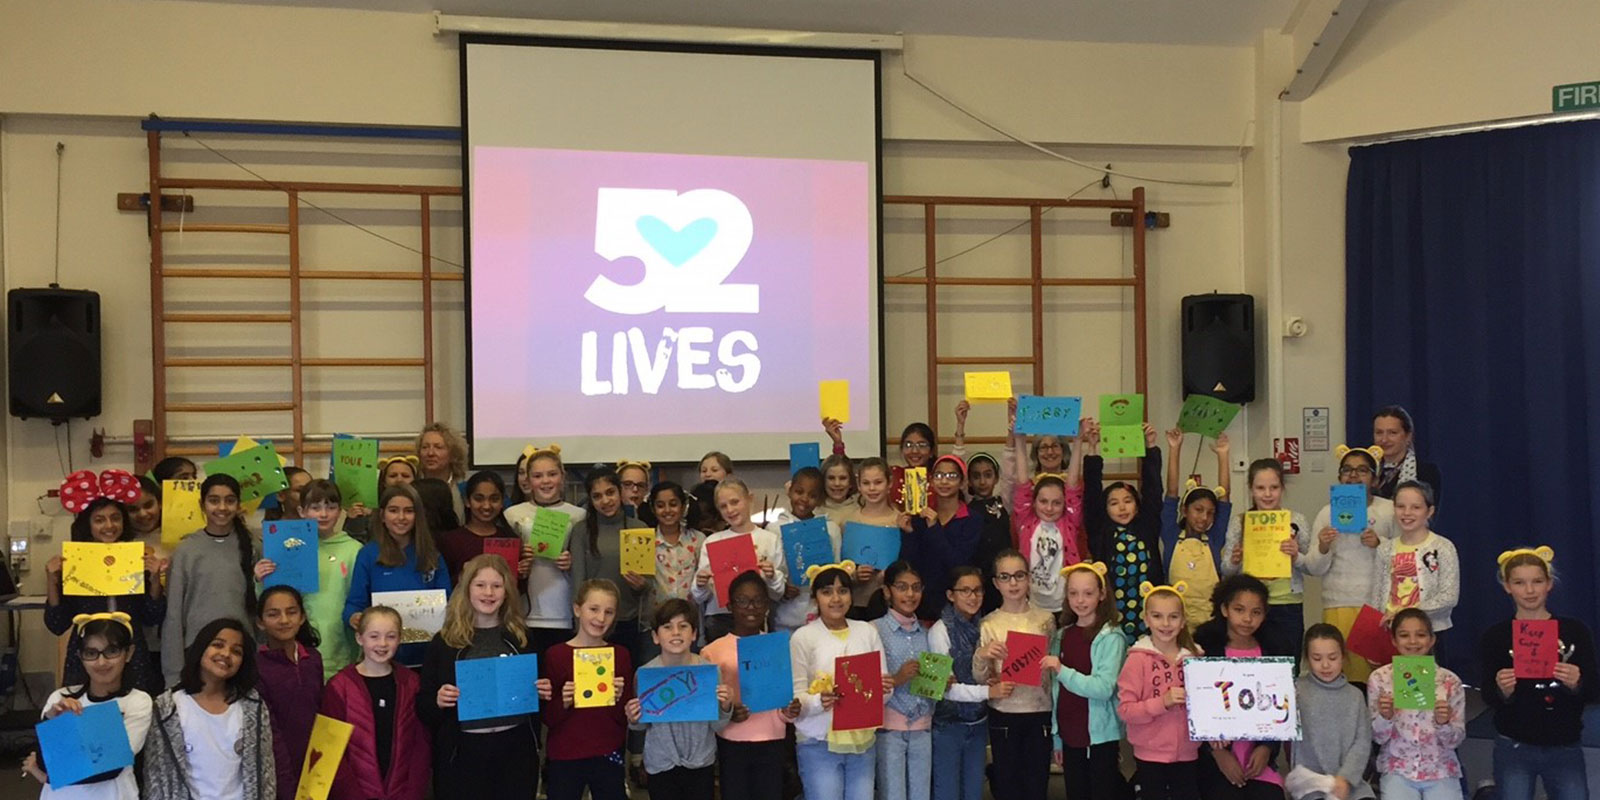 Jaime in schools running the 52 Lives project